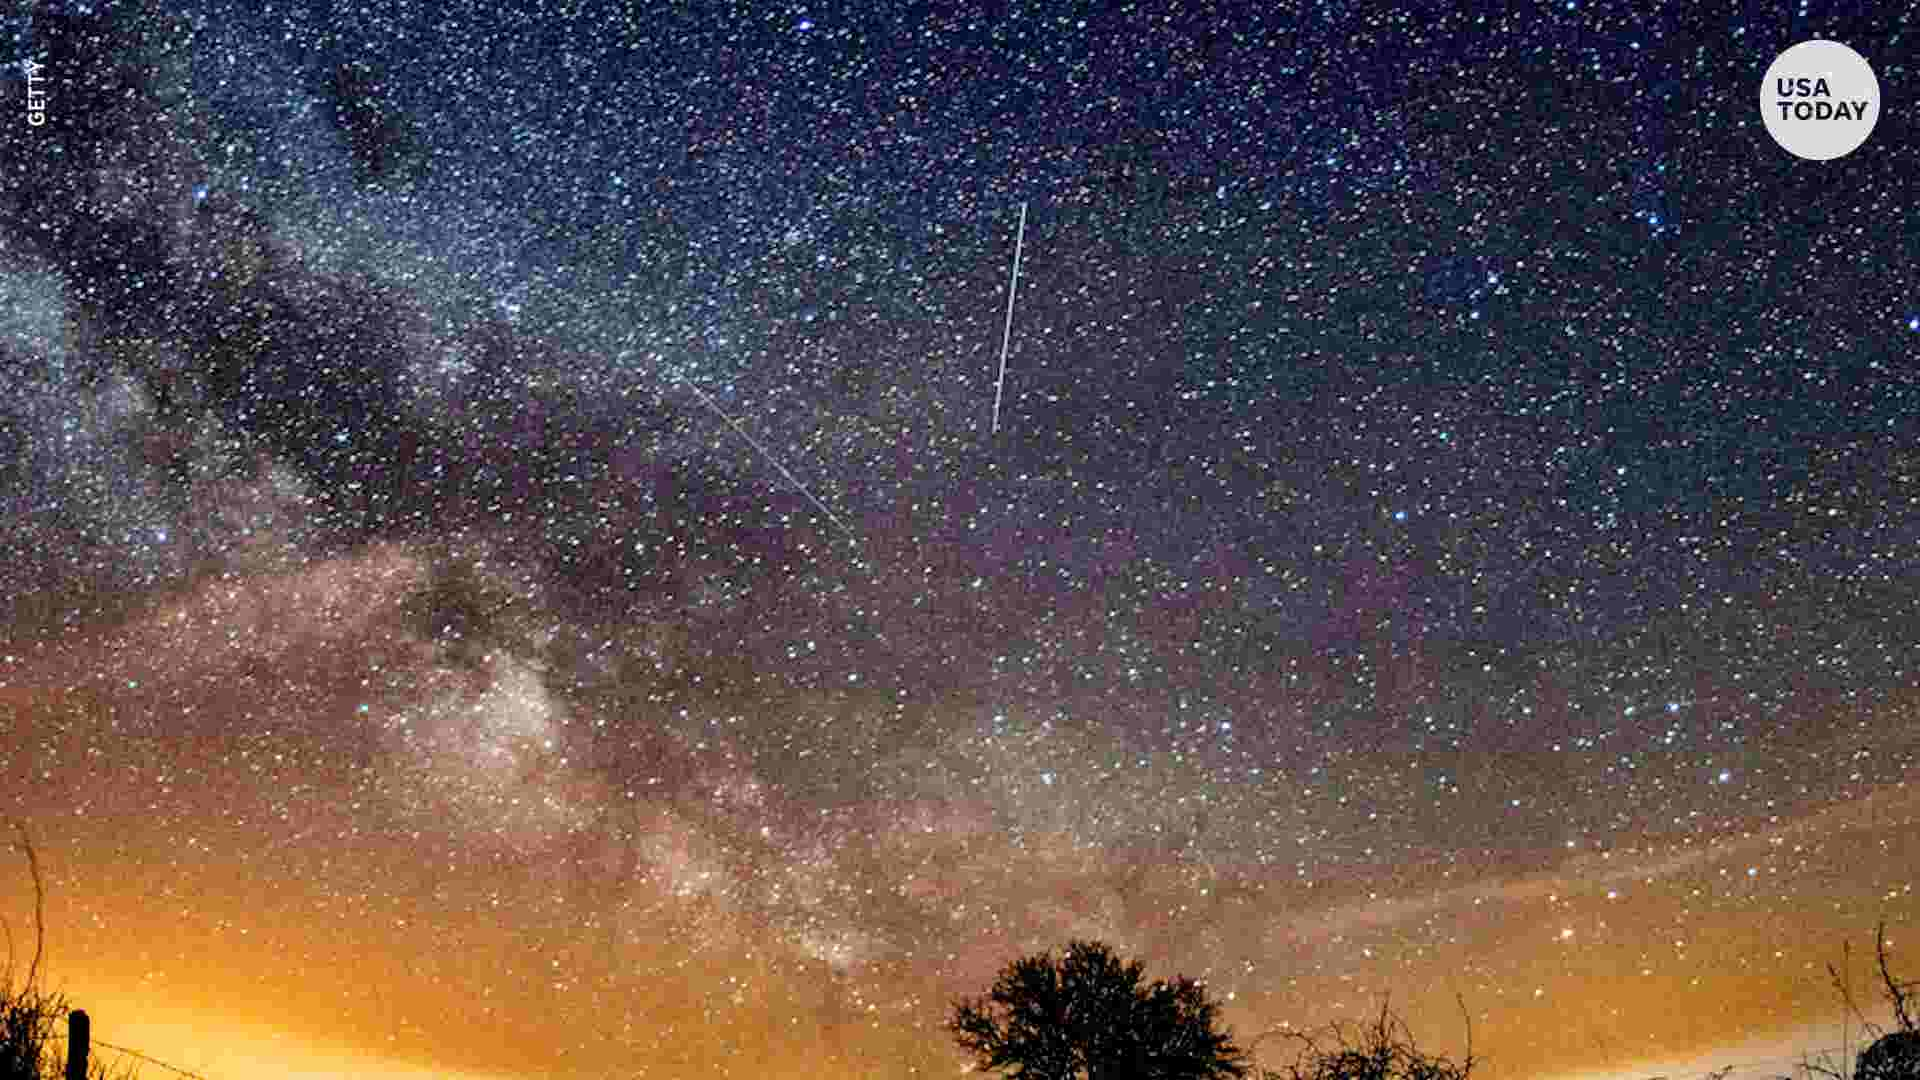 Coming to a sky near you: Lyrid meteor shower